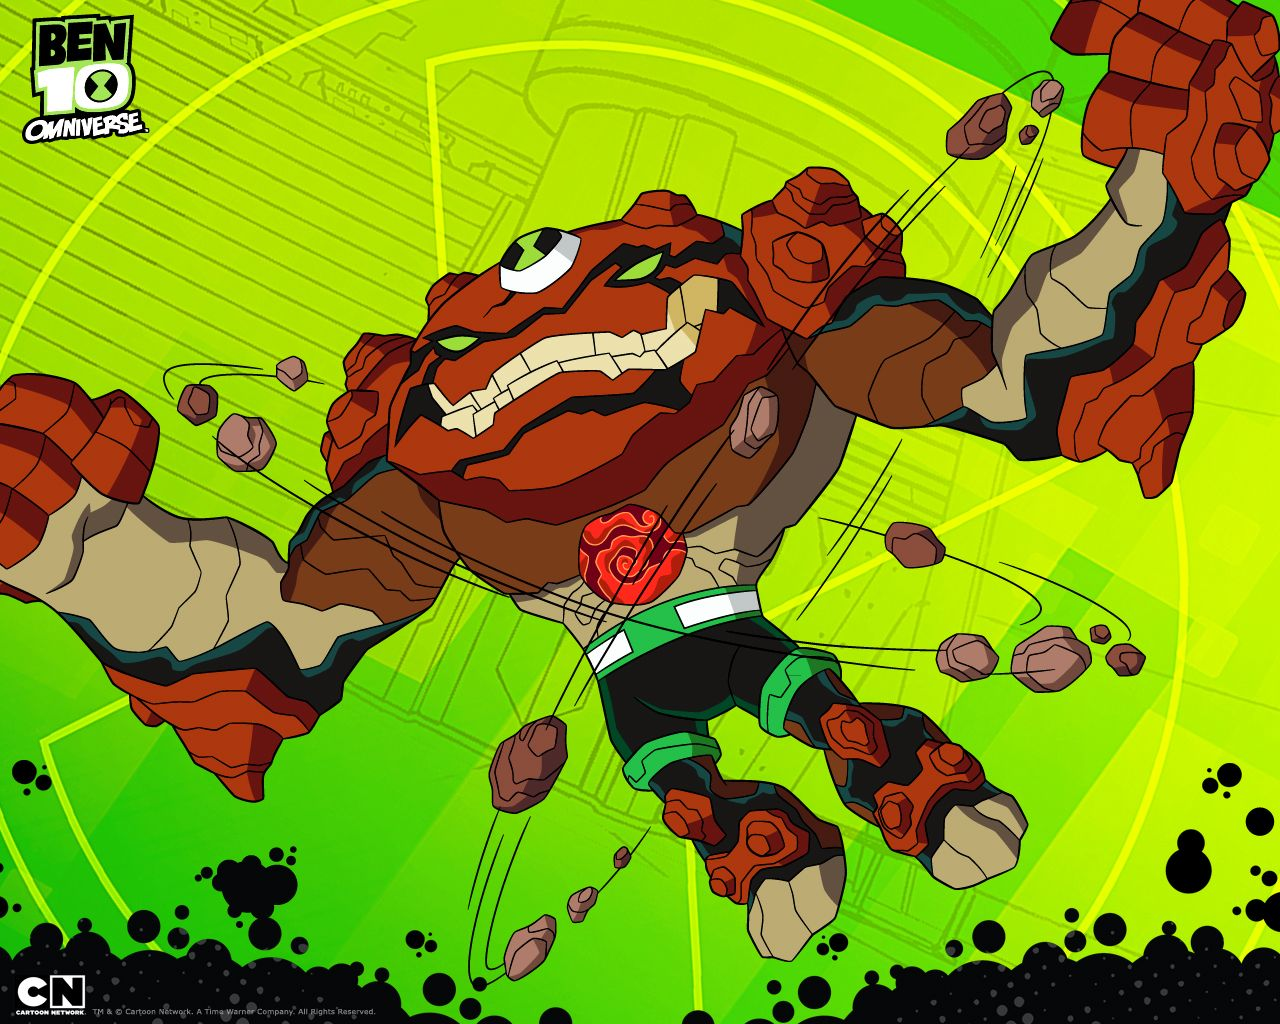 Images Of Ben 10 Omniverse Download Free Pictures And Wallpapers Ben 10 Ben 10 Omniverse Cool Cartoons